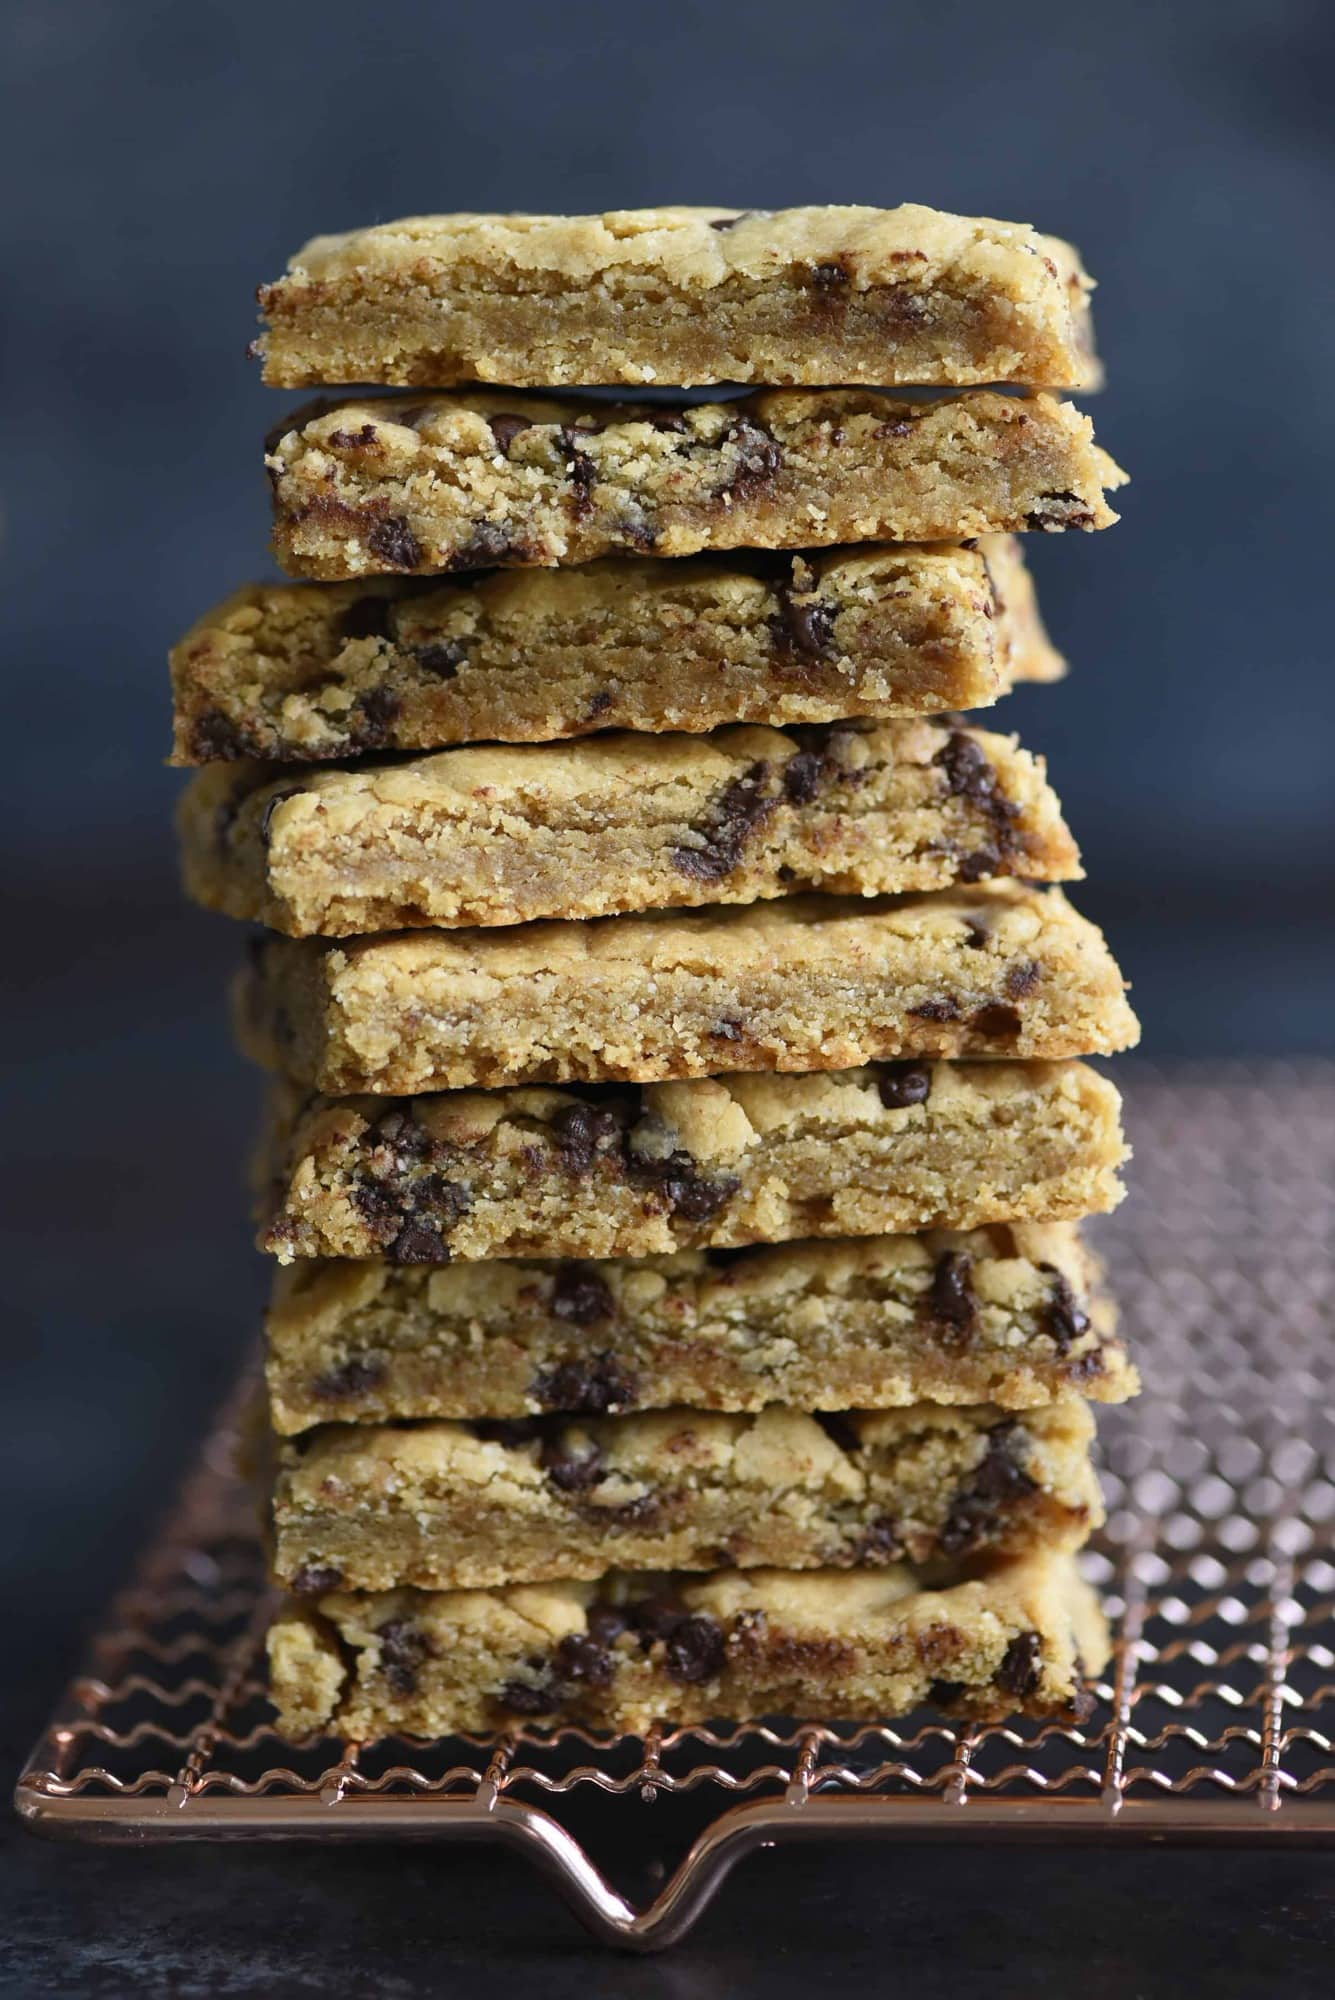 Side view of stack of chocolate chip cookie bars on a cooling rack